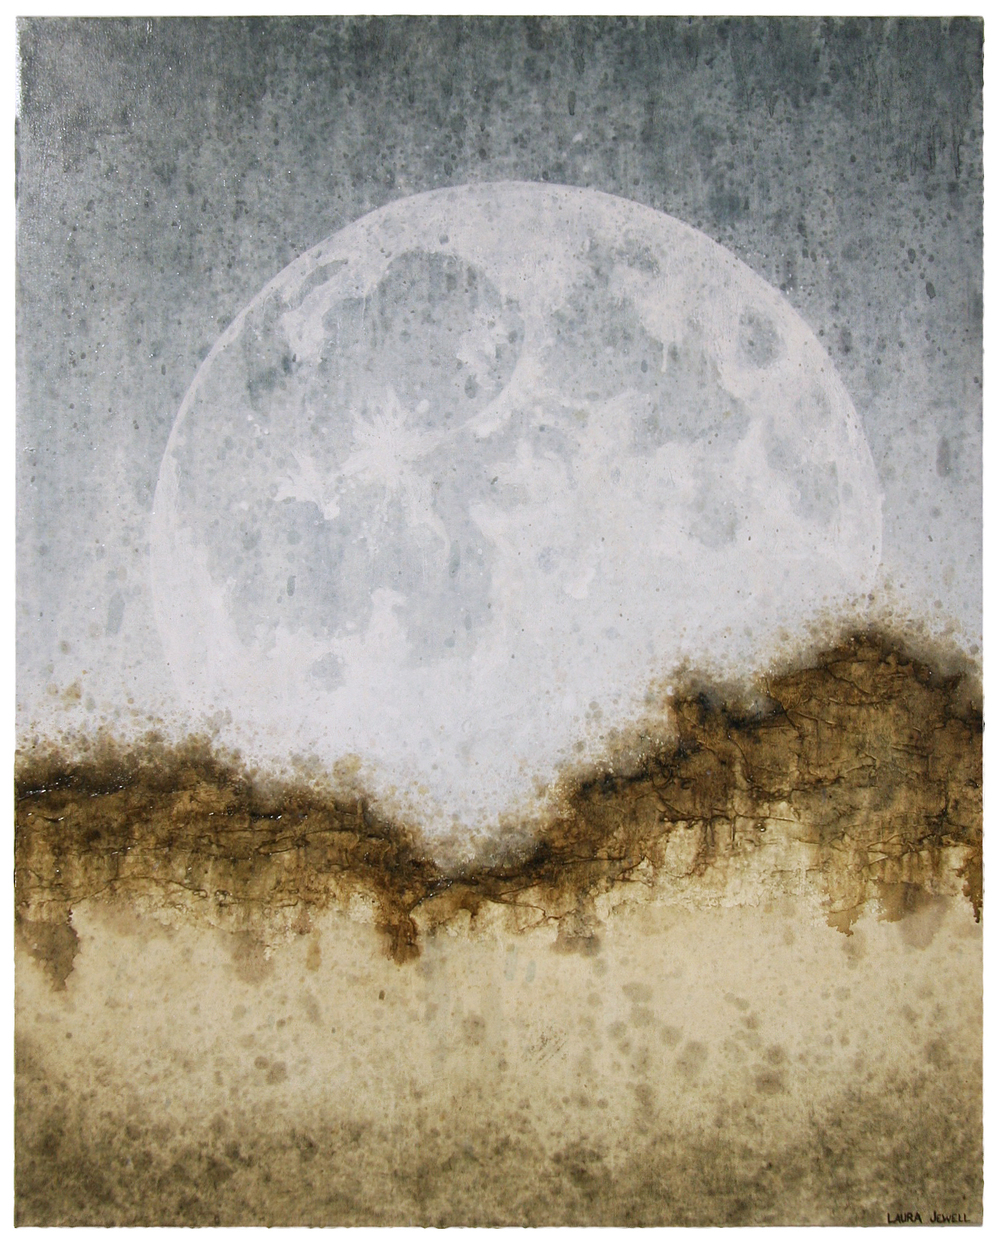 Moon Over Broken Soil